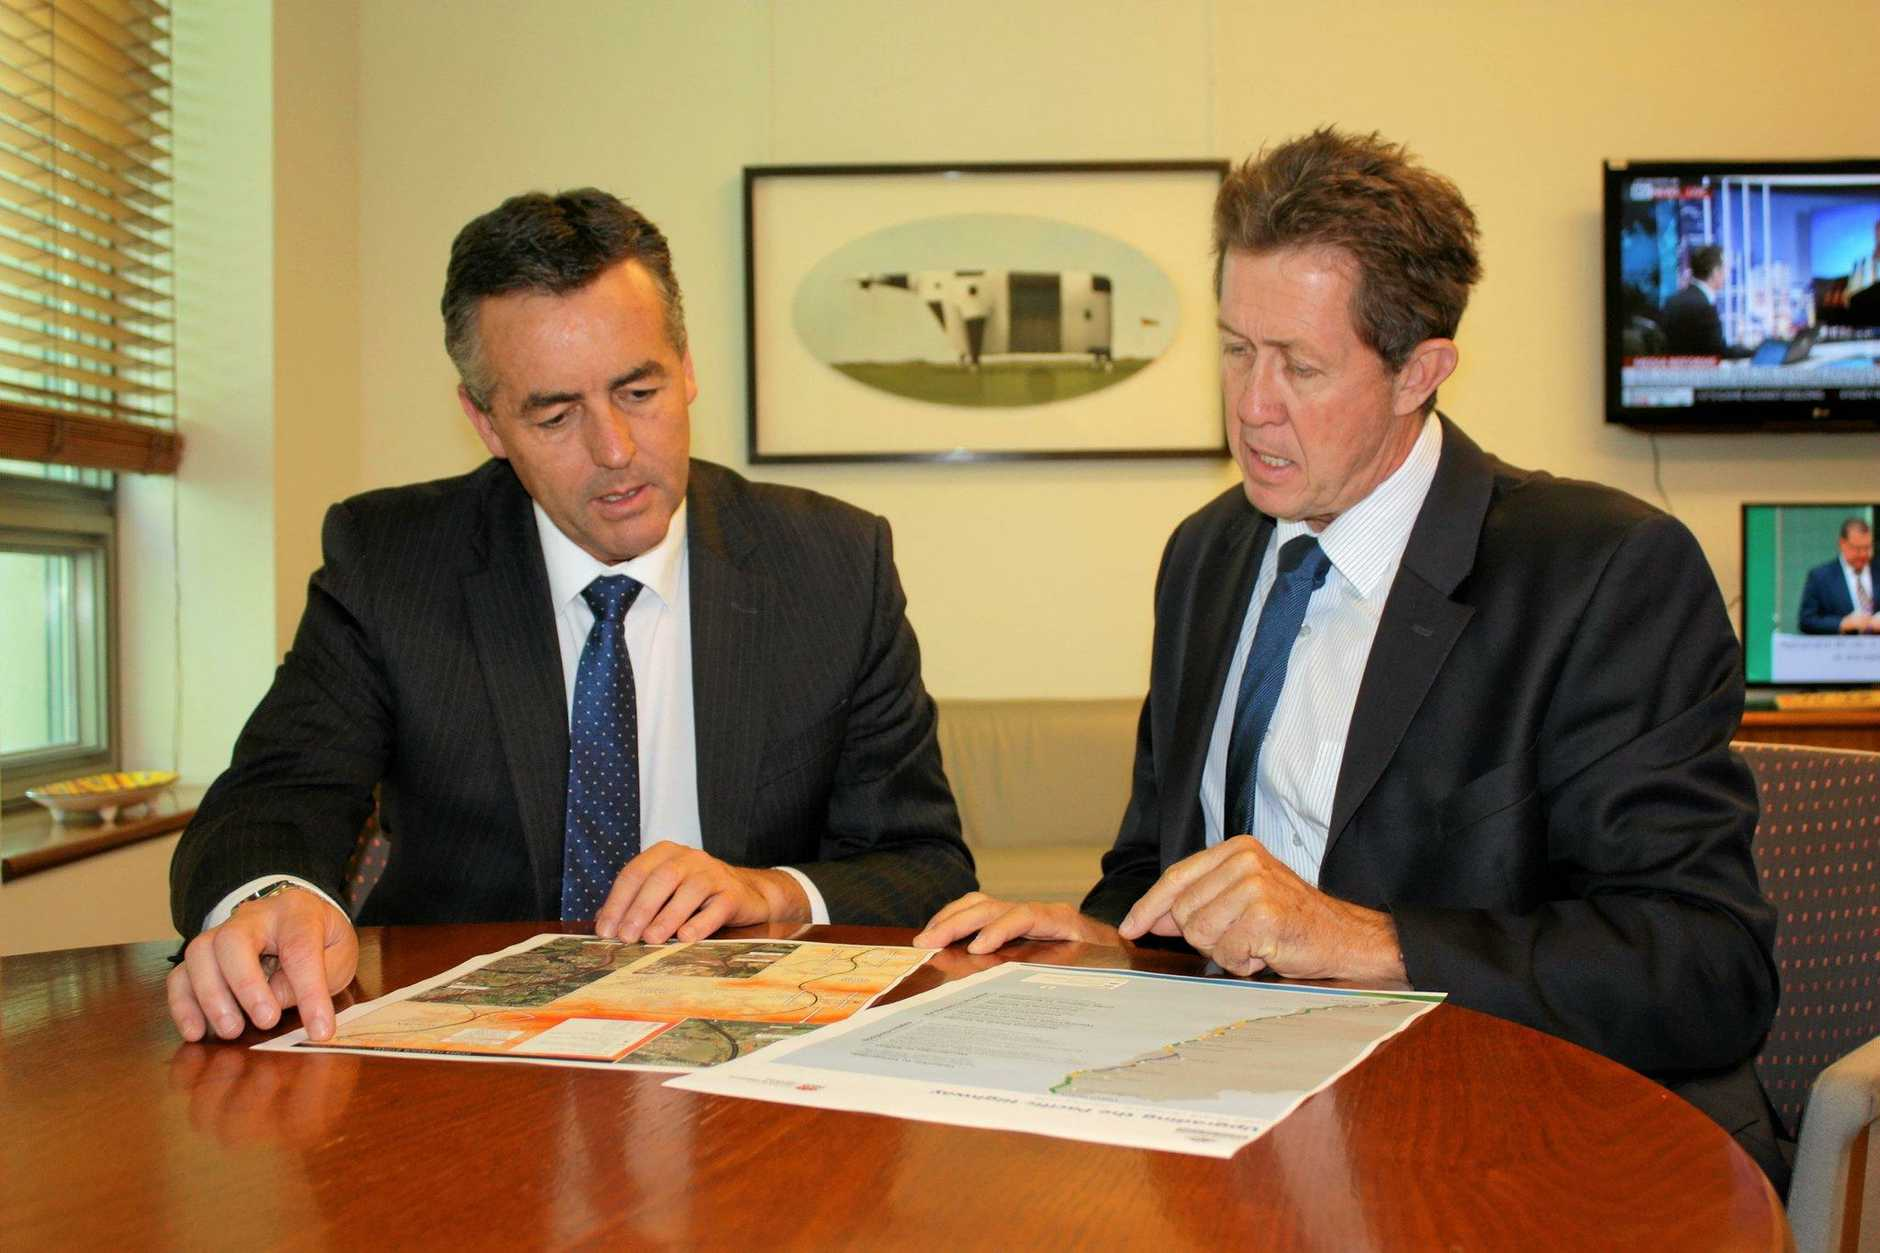 Infrastructure and Transport Minister Darren Chester is shown the plans for a Coffs Harbour bypass by Cowper MP Luke Hartsuyker.